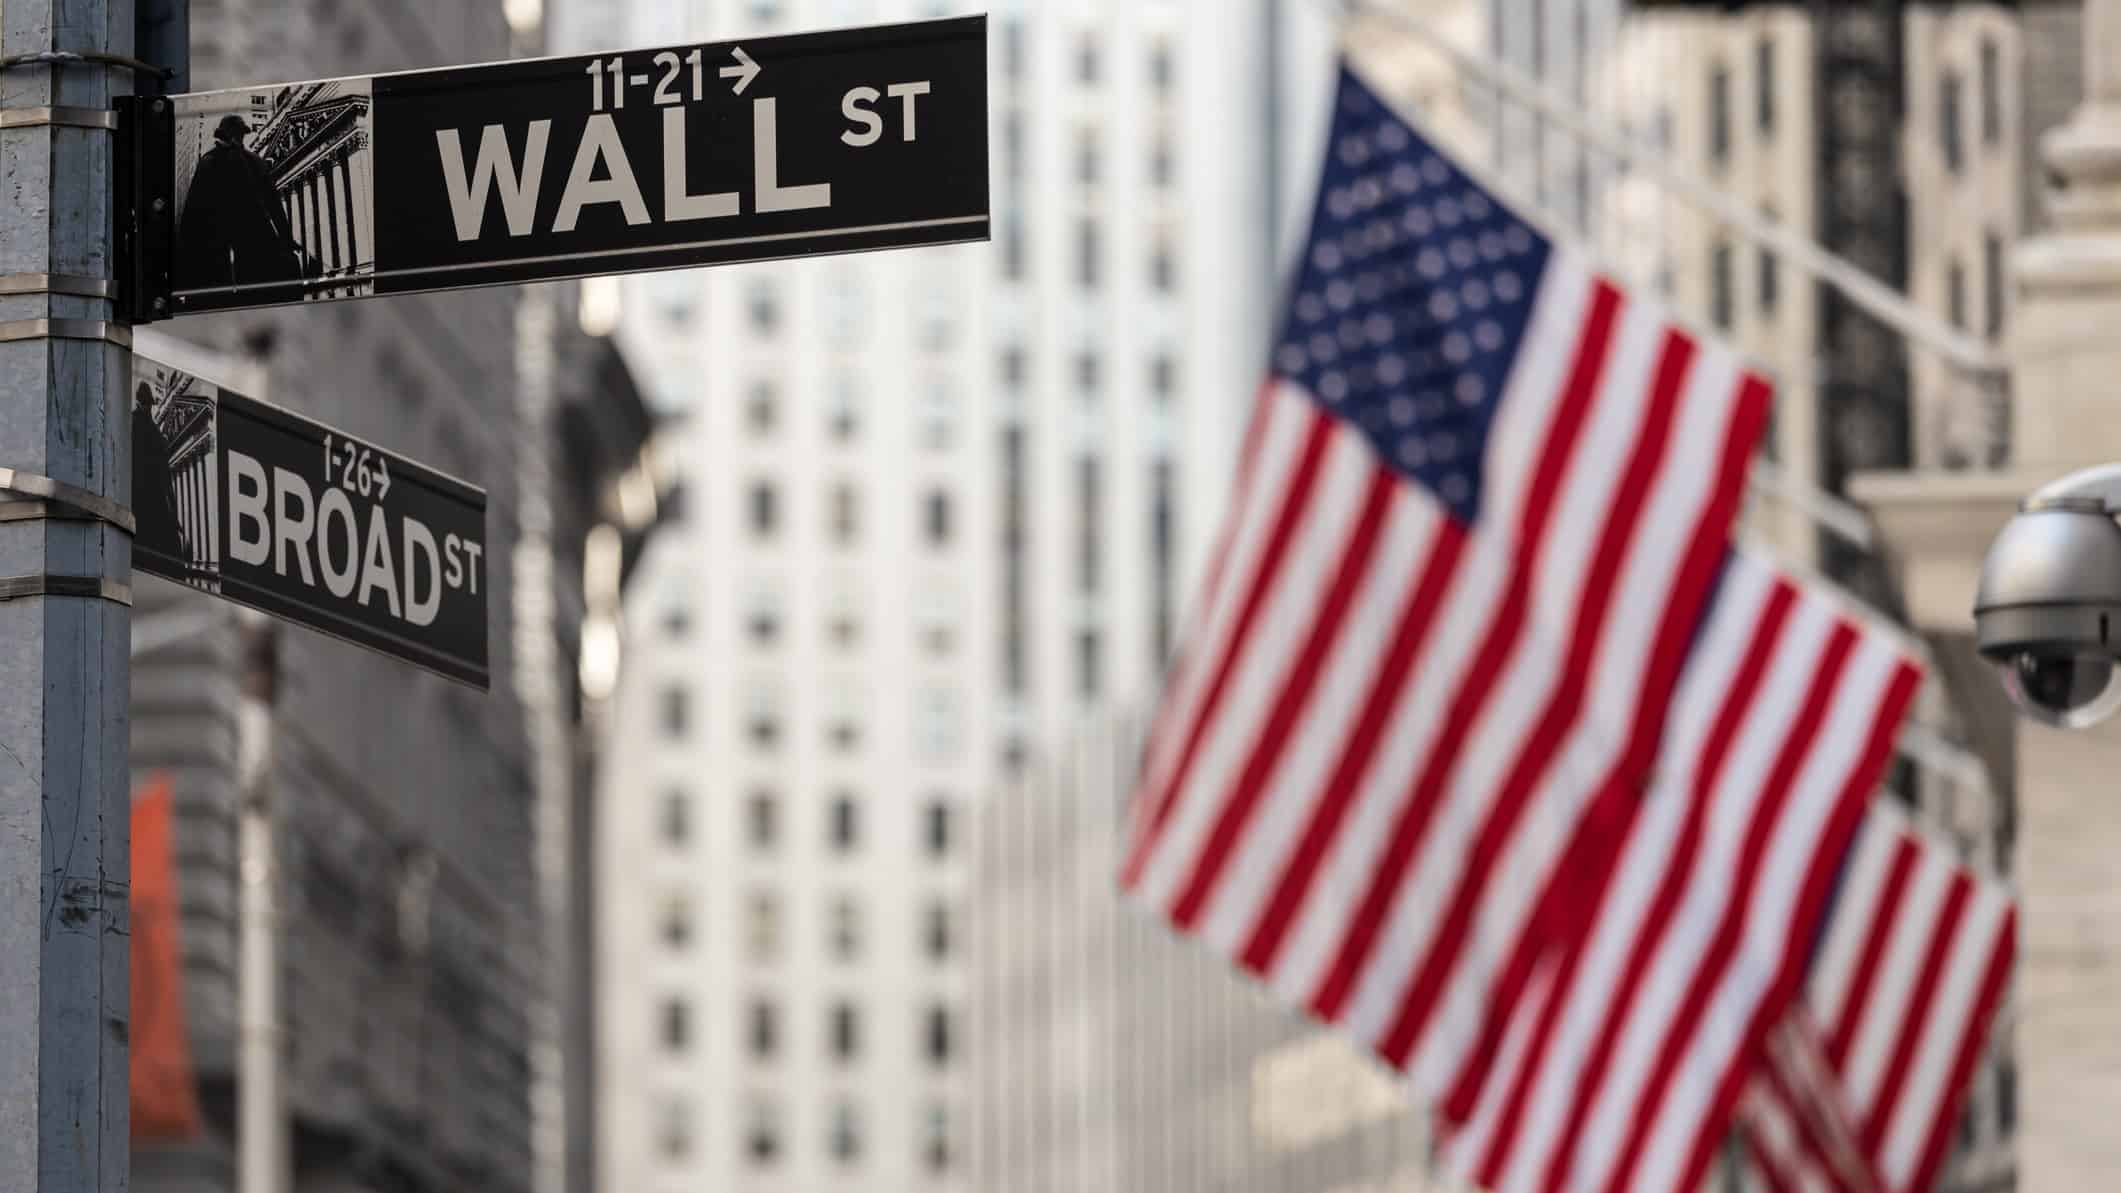 Road sign for 'Wall St' with US flags in background